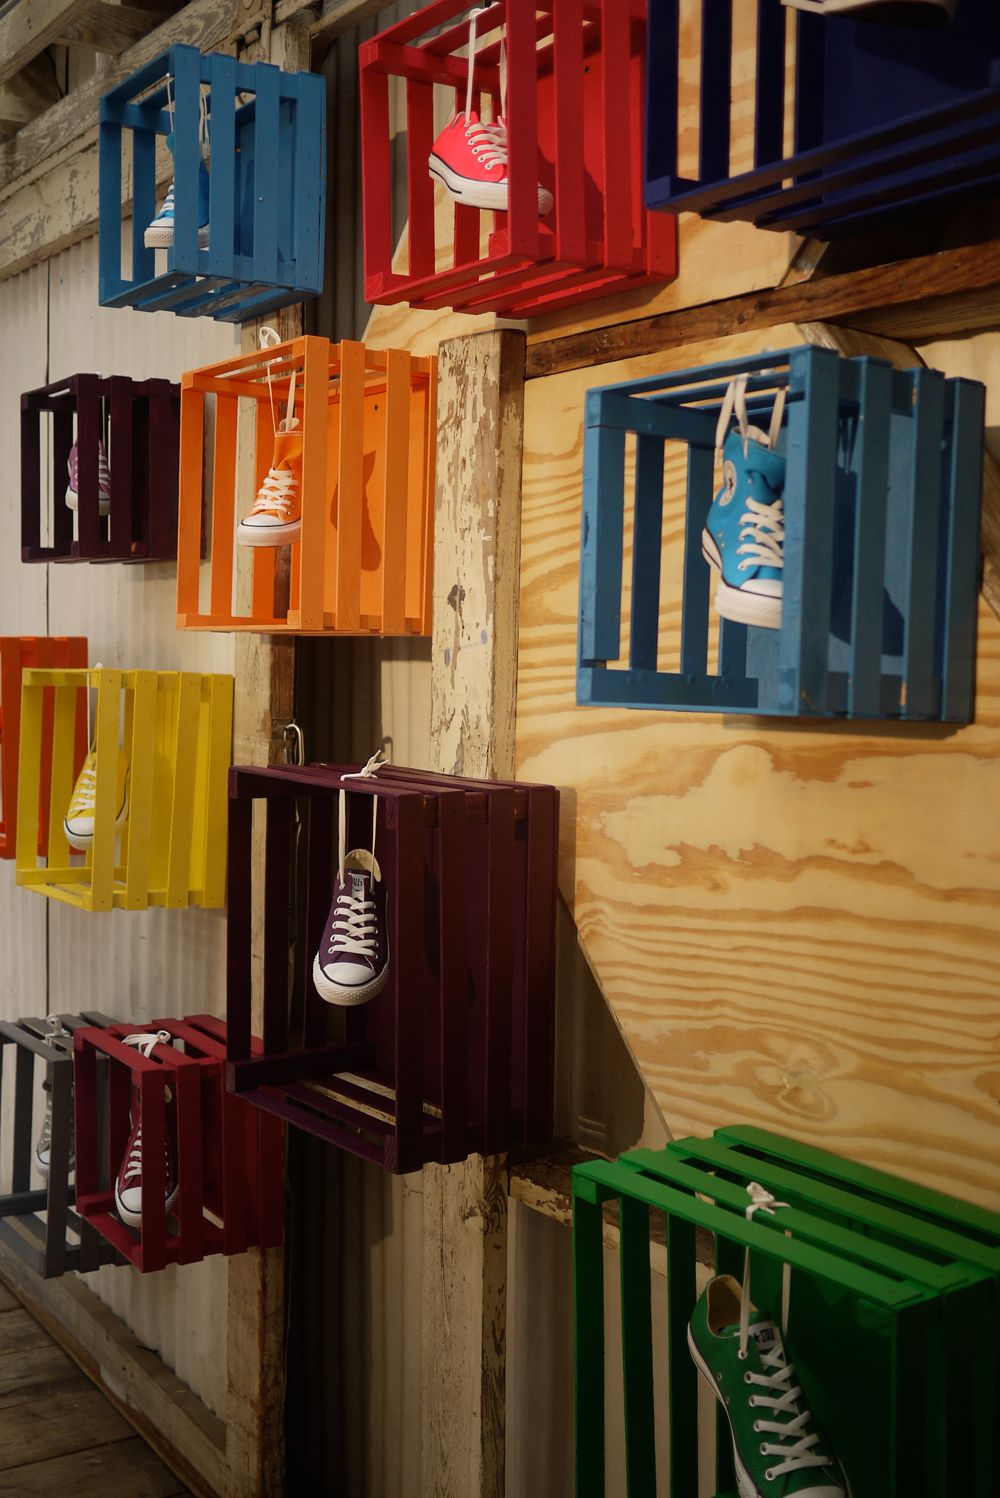 Window display ideas  shoe crates  not sure i would exhibit shoes but the idea is